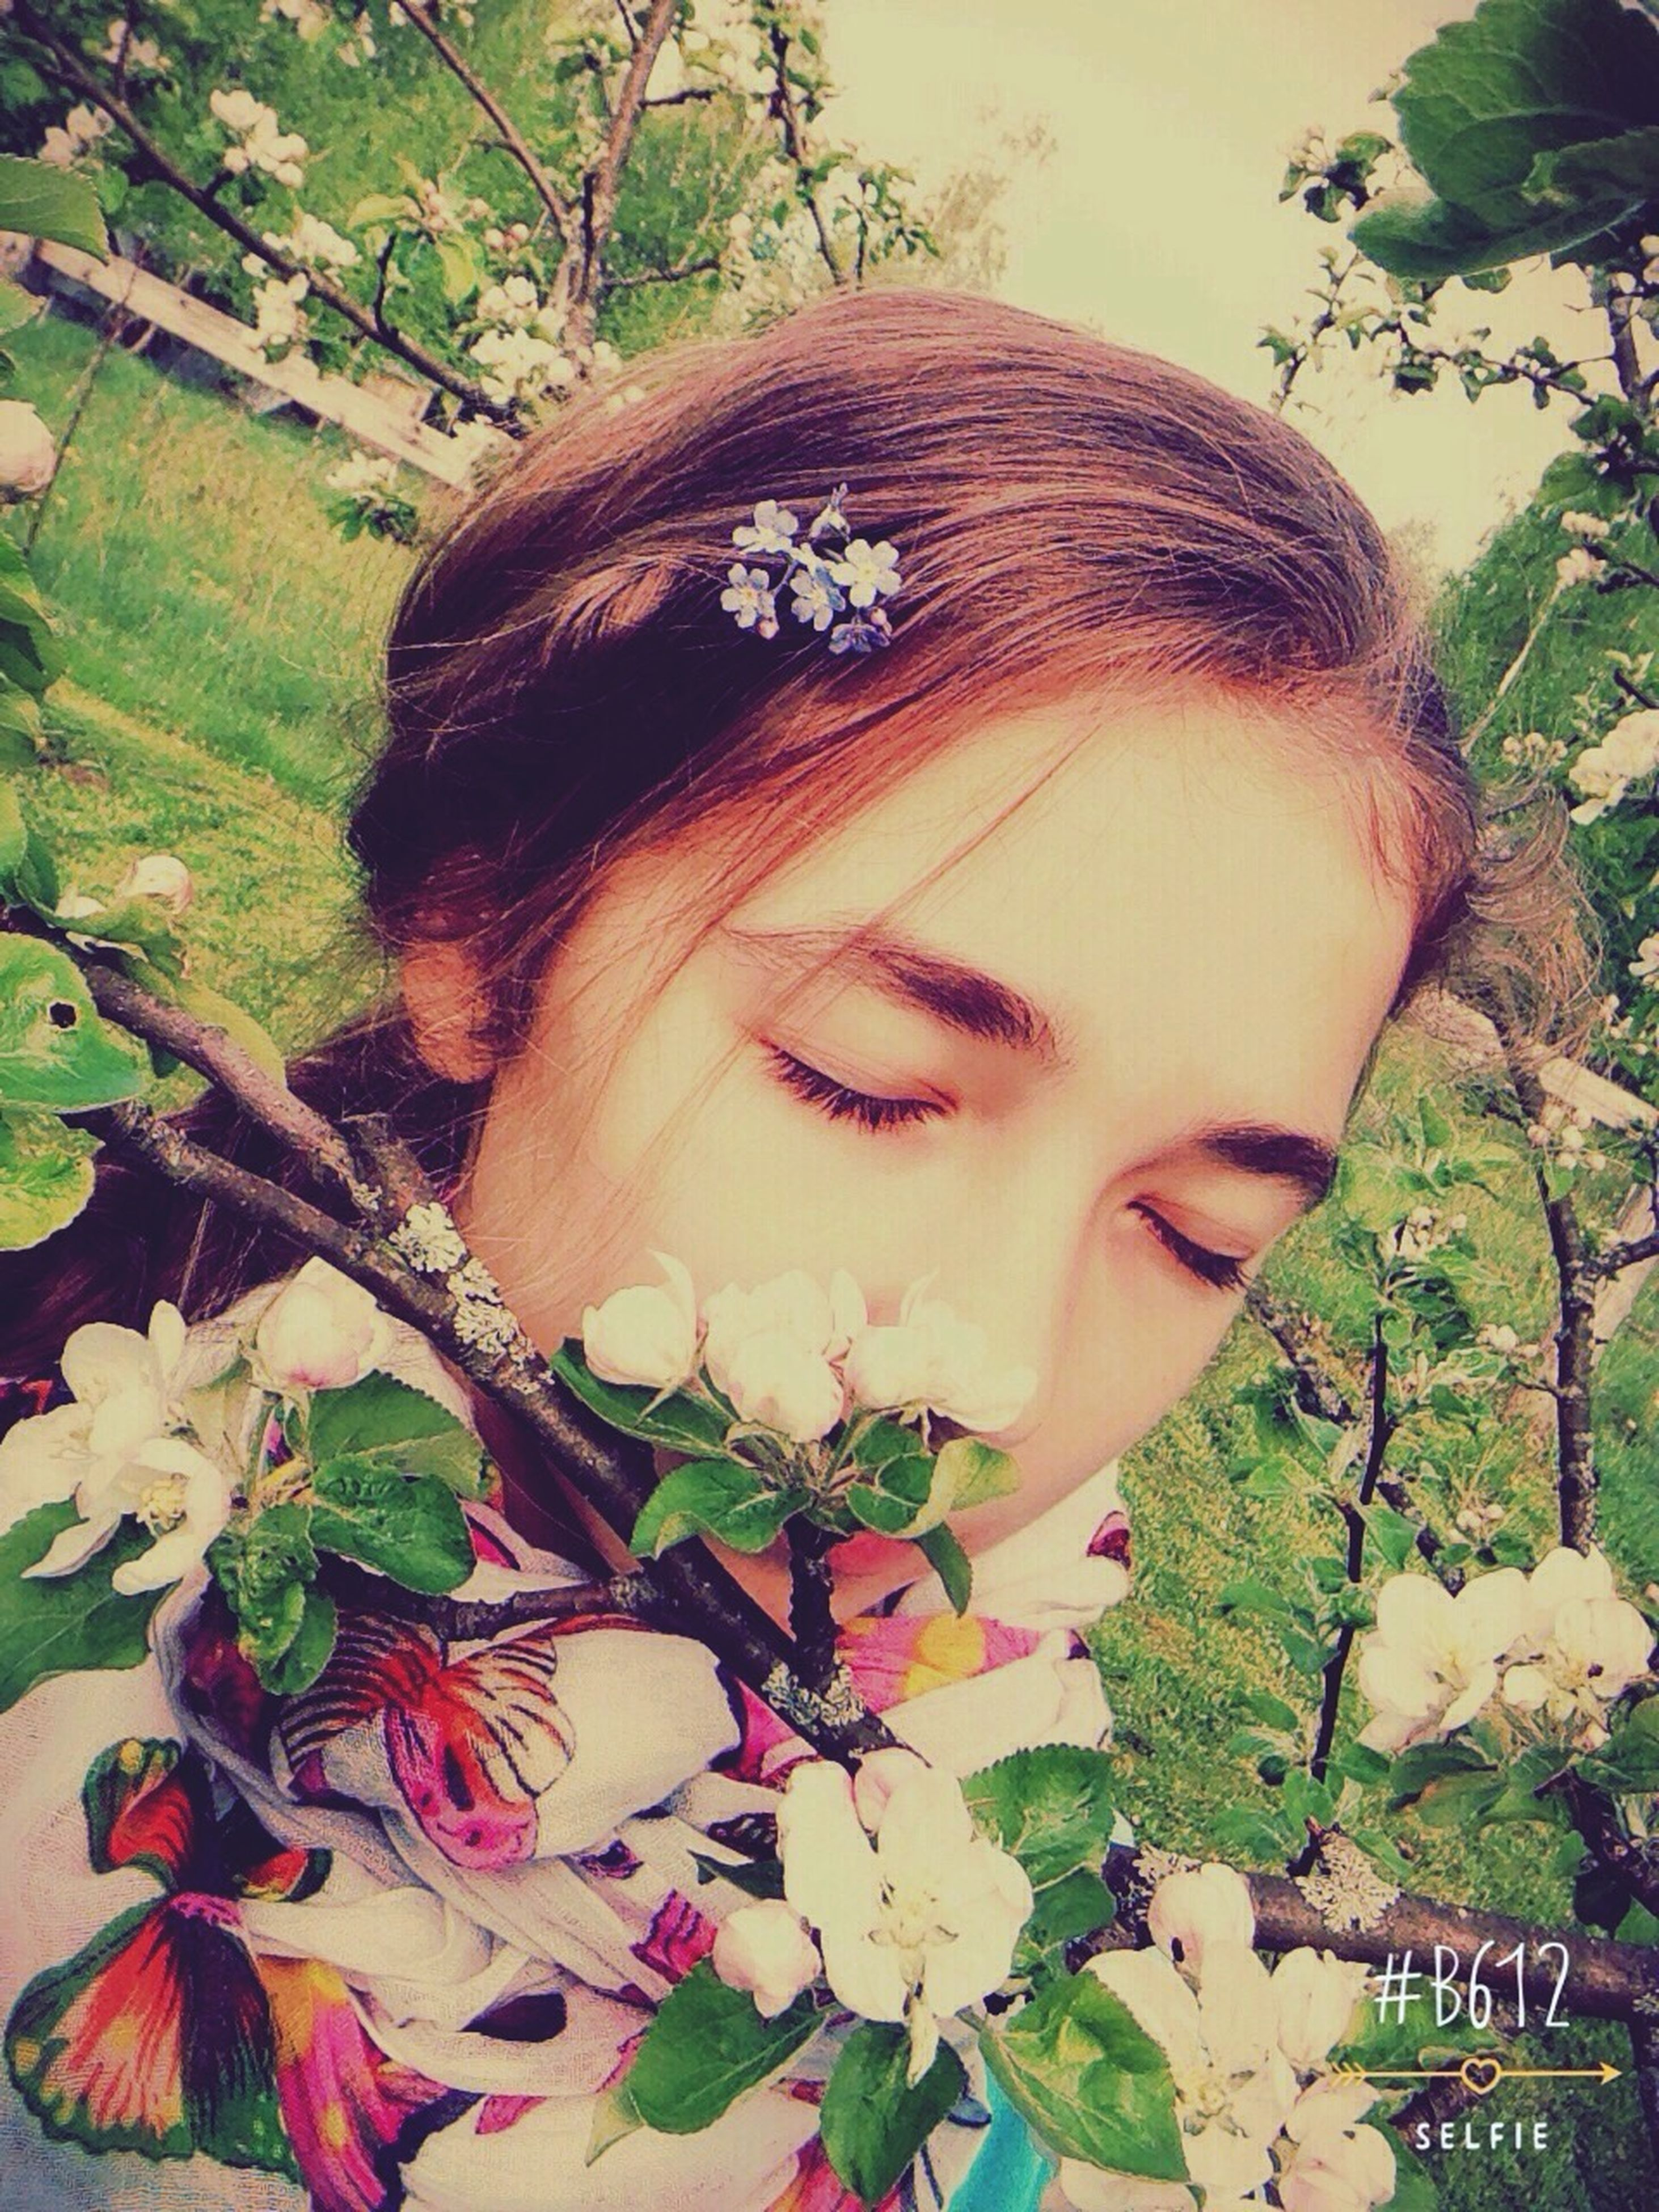 tree, leaf, close-up, growth, plant, nature, headshot, branch, human face, outdoors, day, lifestyles, young adult, focus on foreground, young women, flower, portrait, beauty in nature